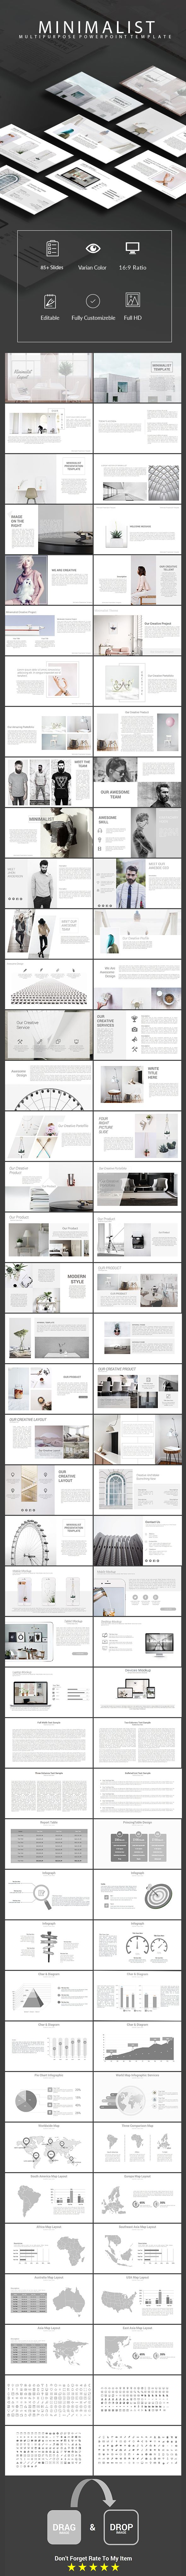 Minimalist - Multipurpose Powerpoint Template (PowerPoint Templates)